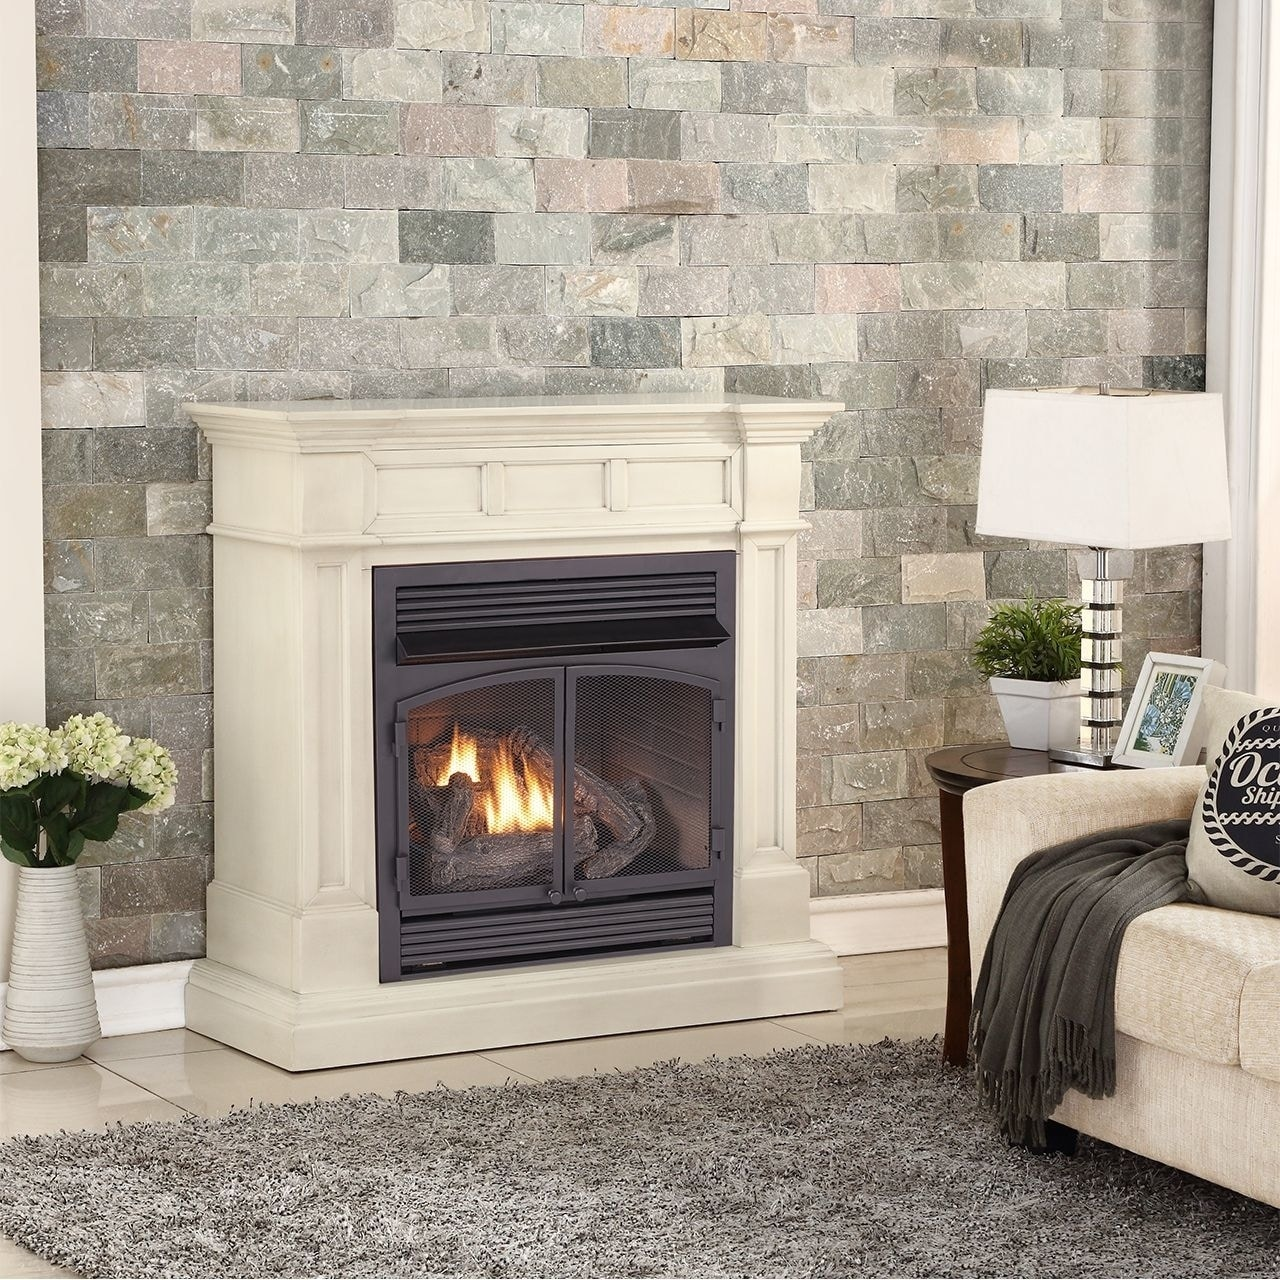 Antique White Gel Fireplace Buy Fireplaces Online At Overstock Our Best Decorative